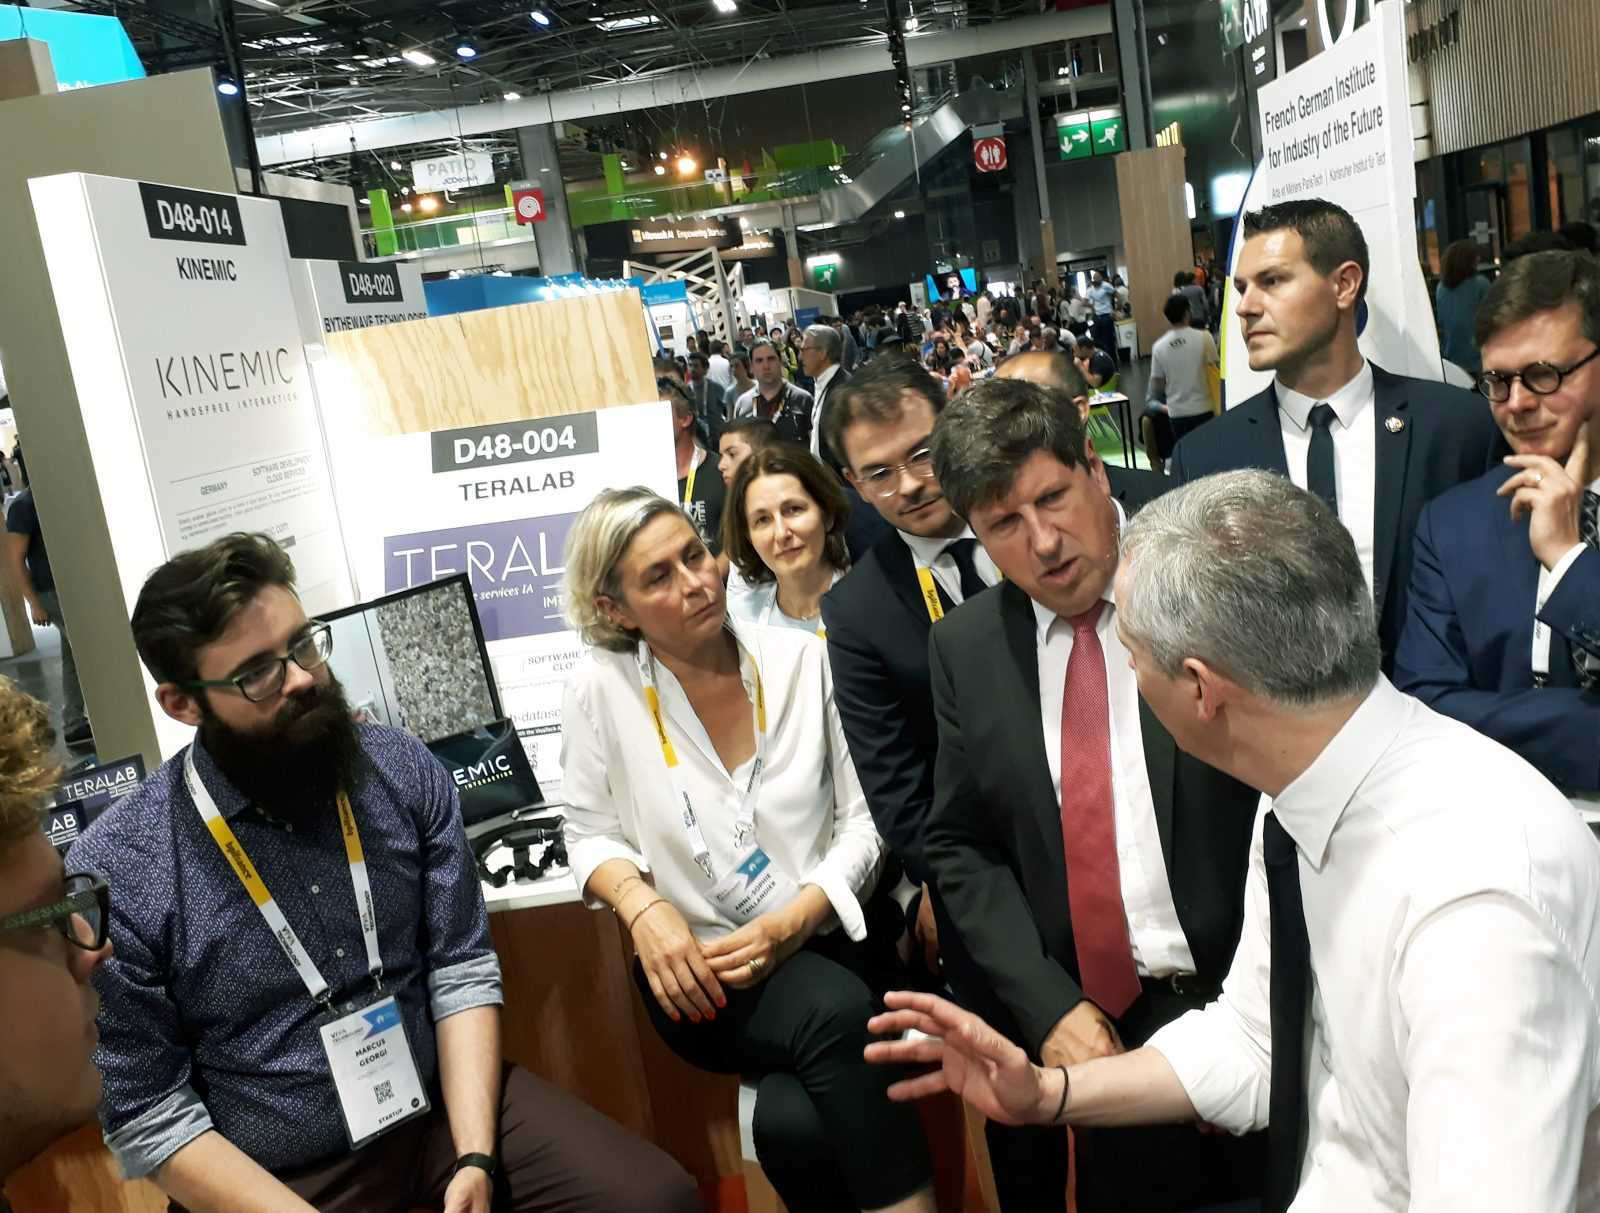 Minister Lemaire am Kinemic-Stand auf der Vivatech